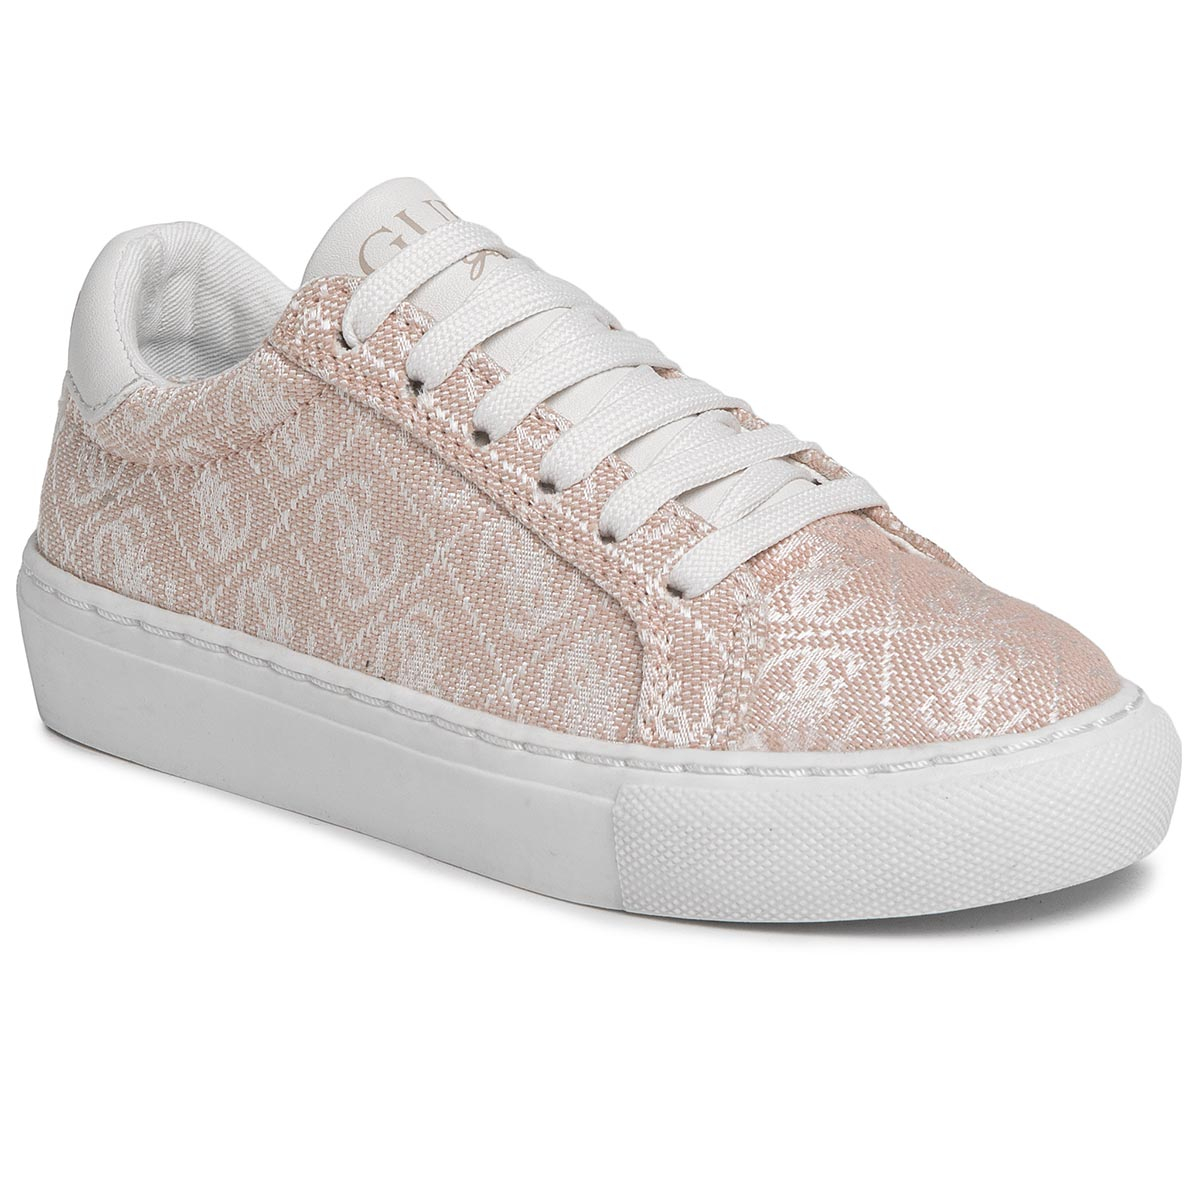 Sneakers GUESS - Lucy FI6LUC FAL12 RSE